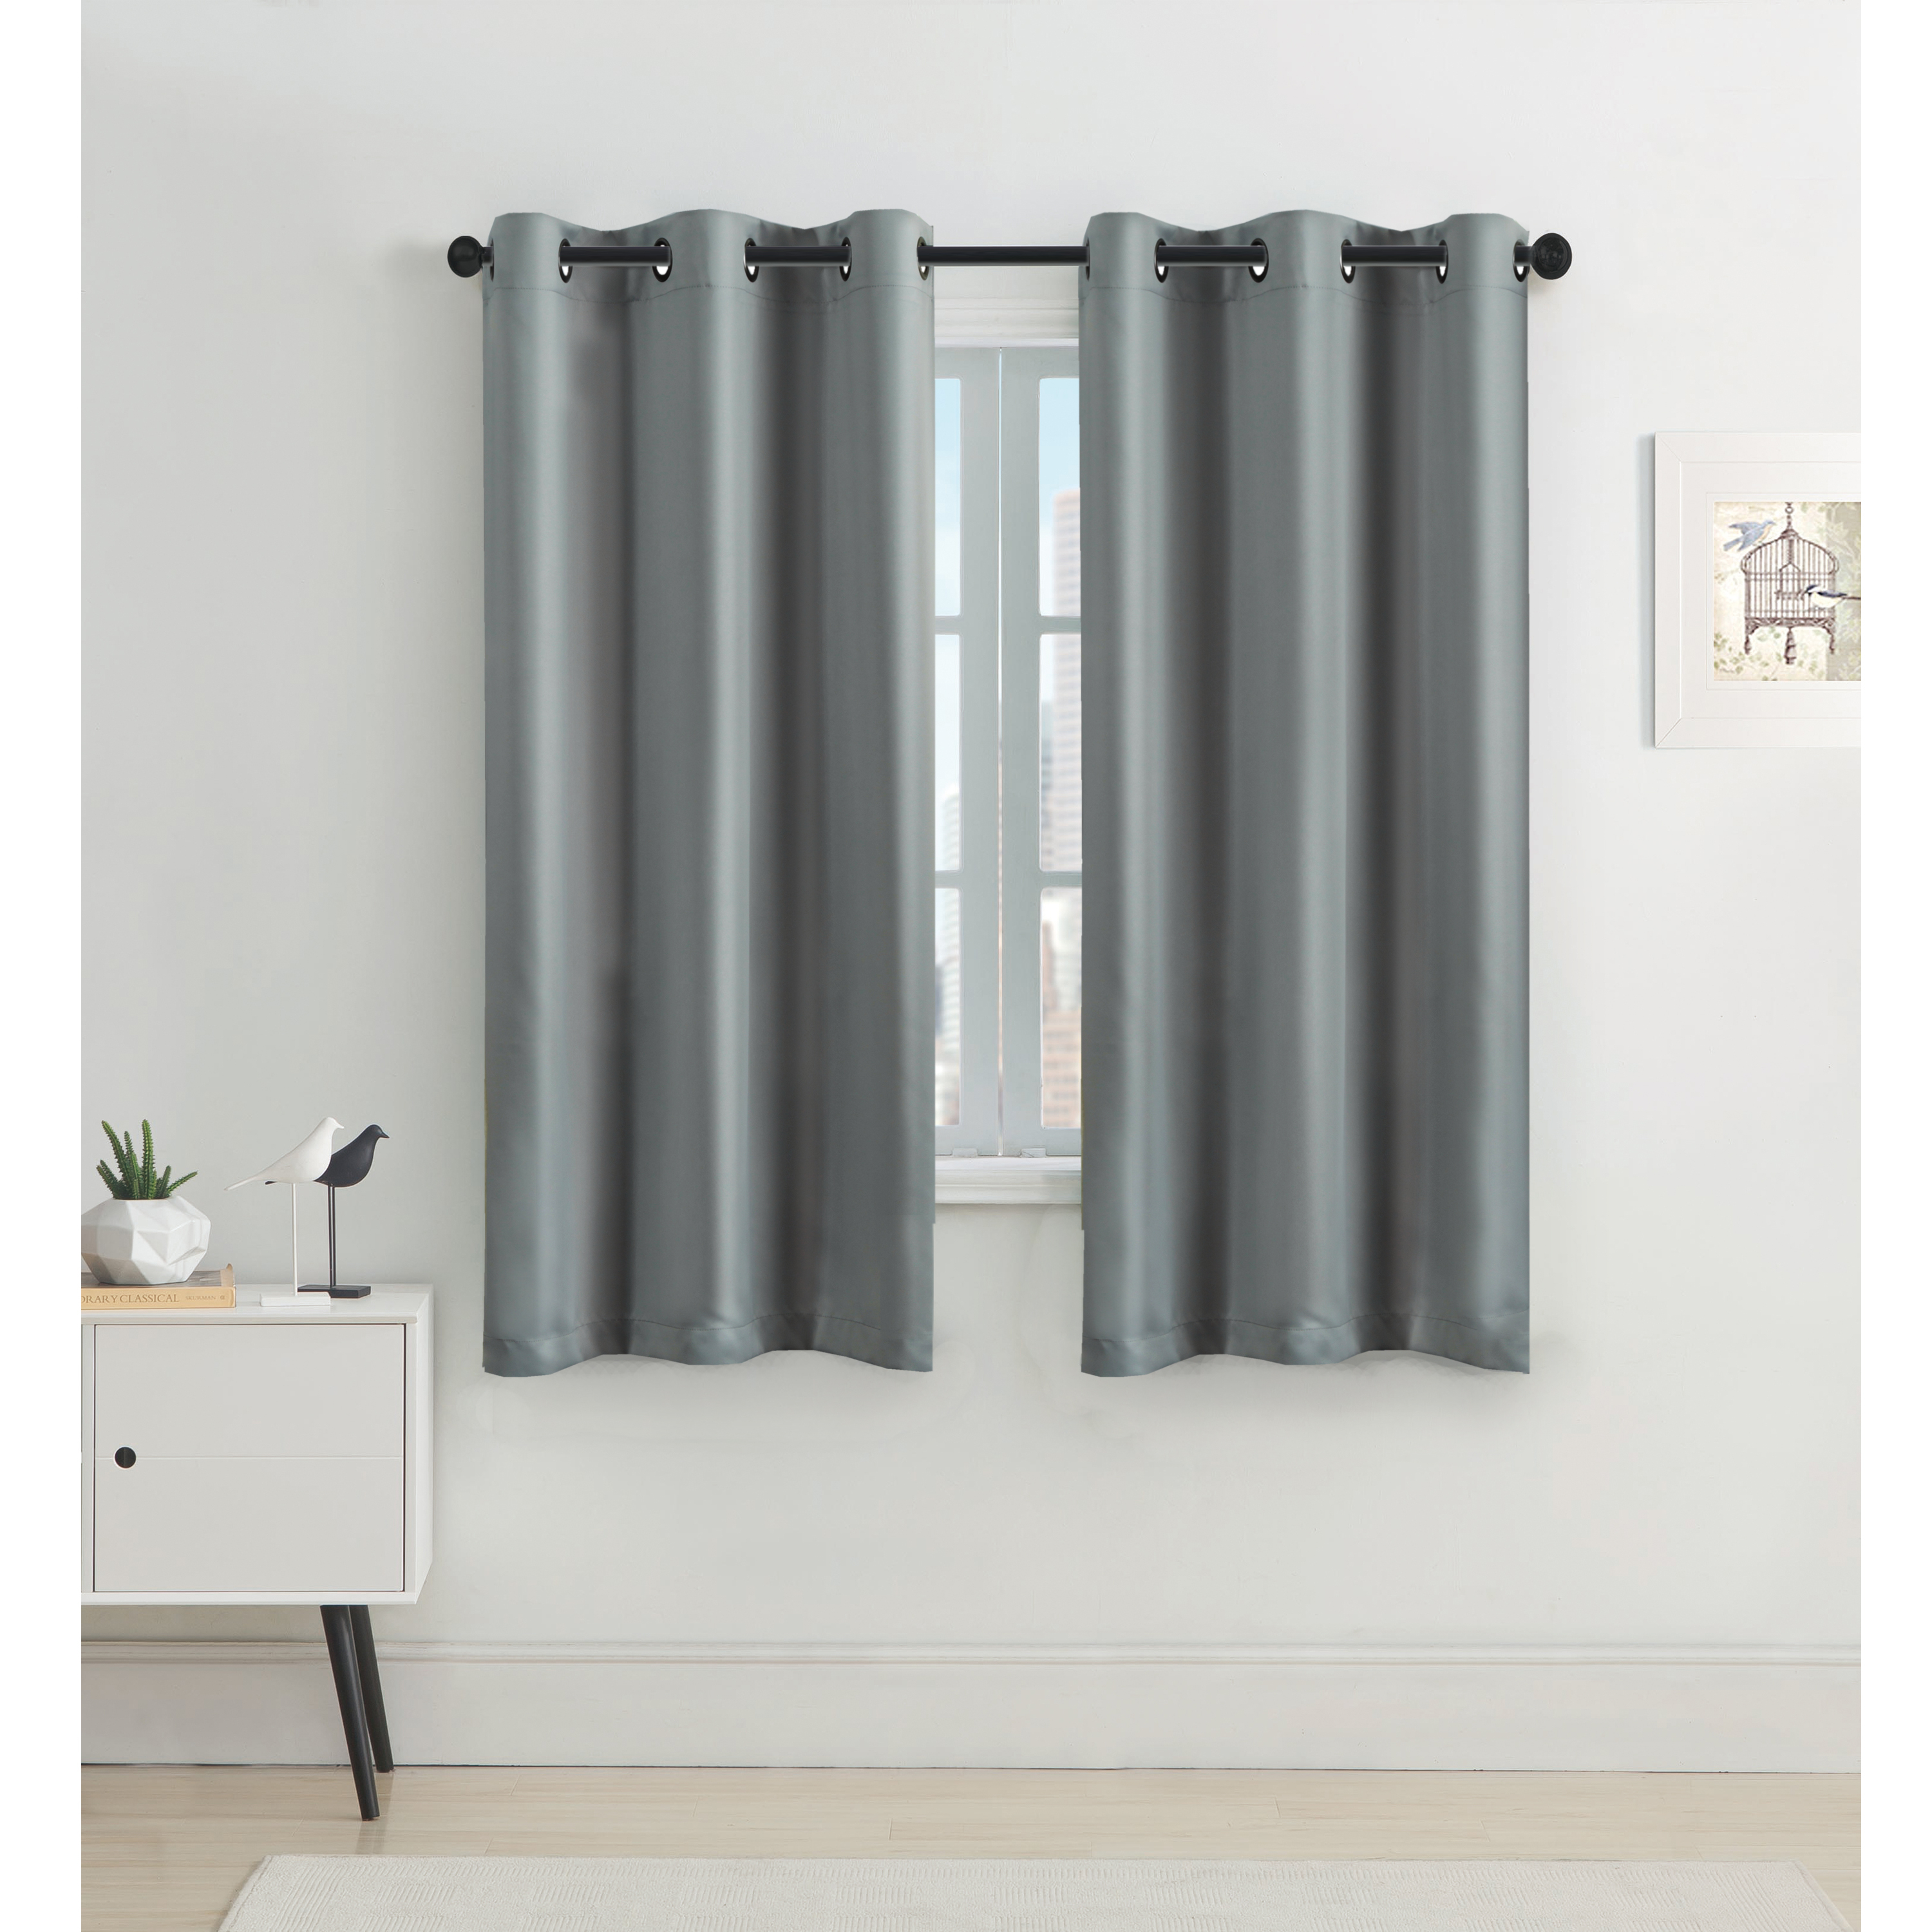 Bedroom Blackout Curtain Panel Home Fashion All Season Solid Grommet Top  Curtain / Panel, 42W X L63 One Panel Dove Gray Regarding All Seasons Blackout Window Curtains (Image 5 of 20)